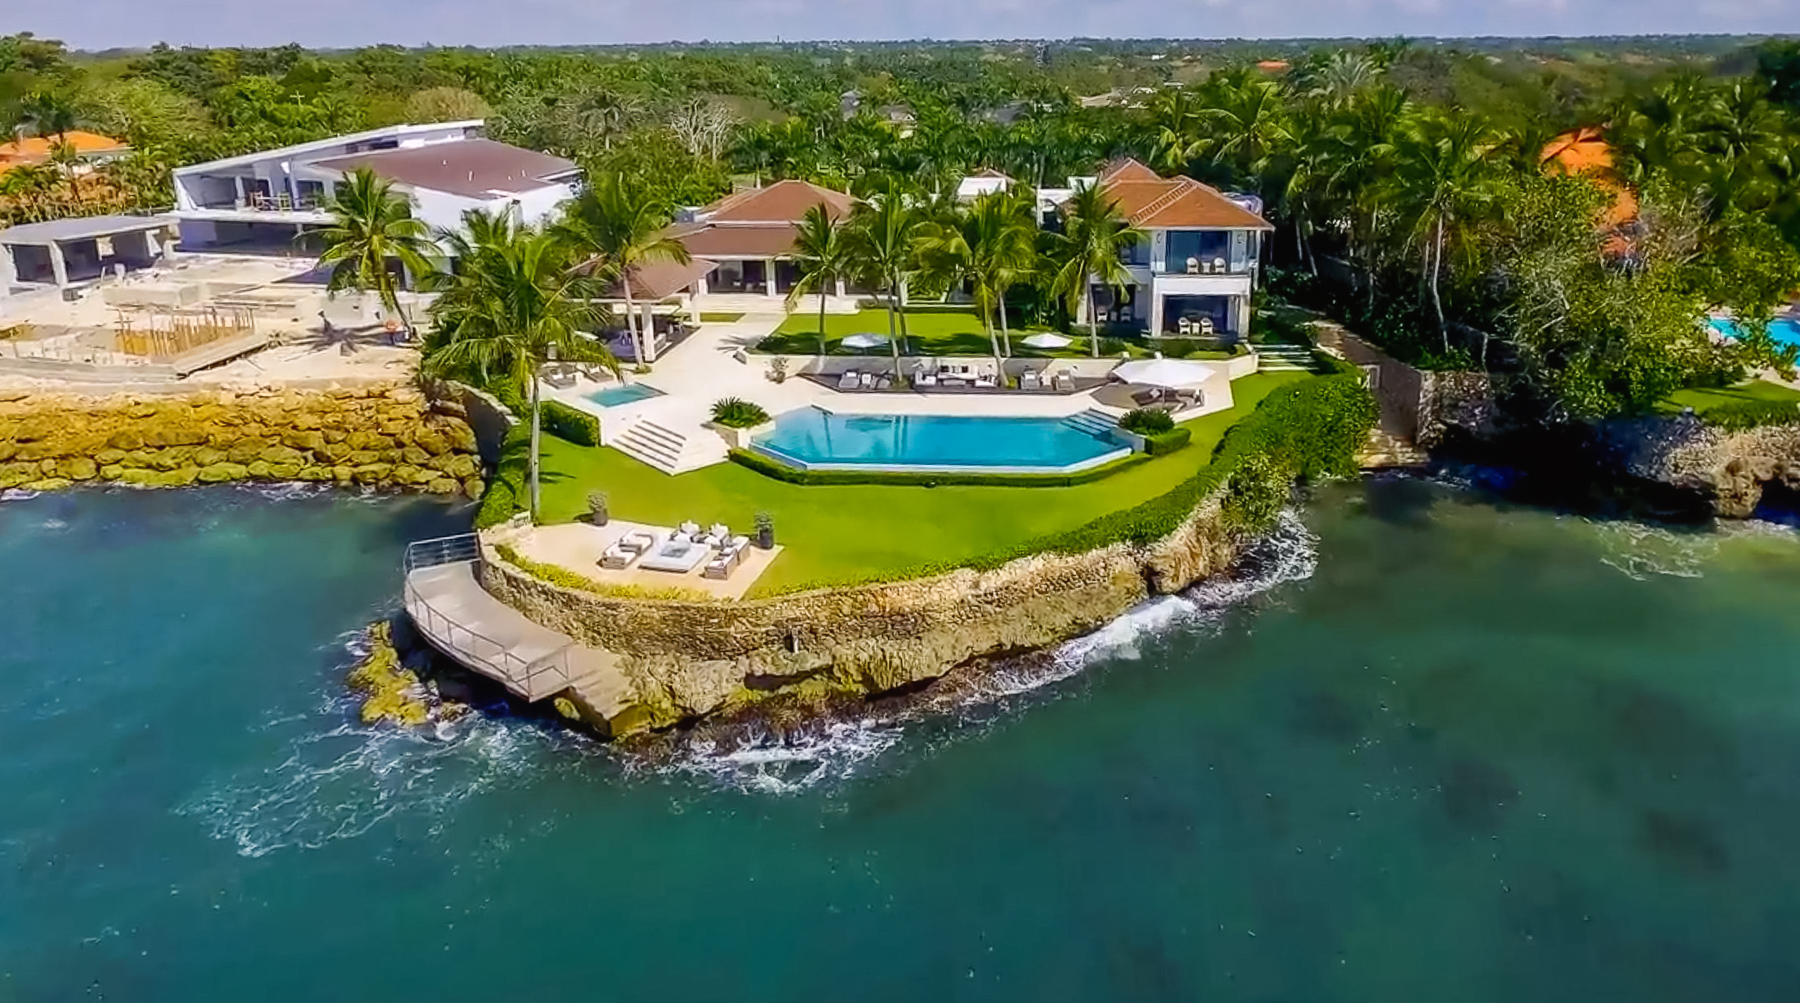 Oceanfront Luxurious Retreat Villa at Punta Minitas | 6beds | 4139m2 lot |1152m2 interiors